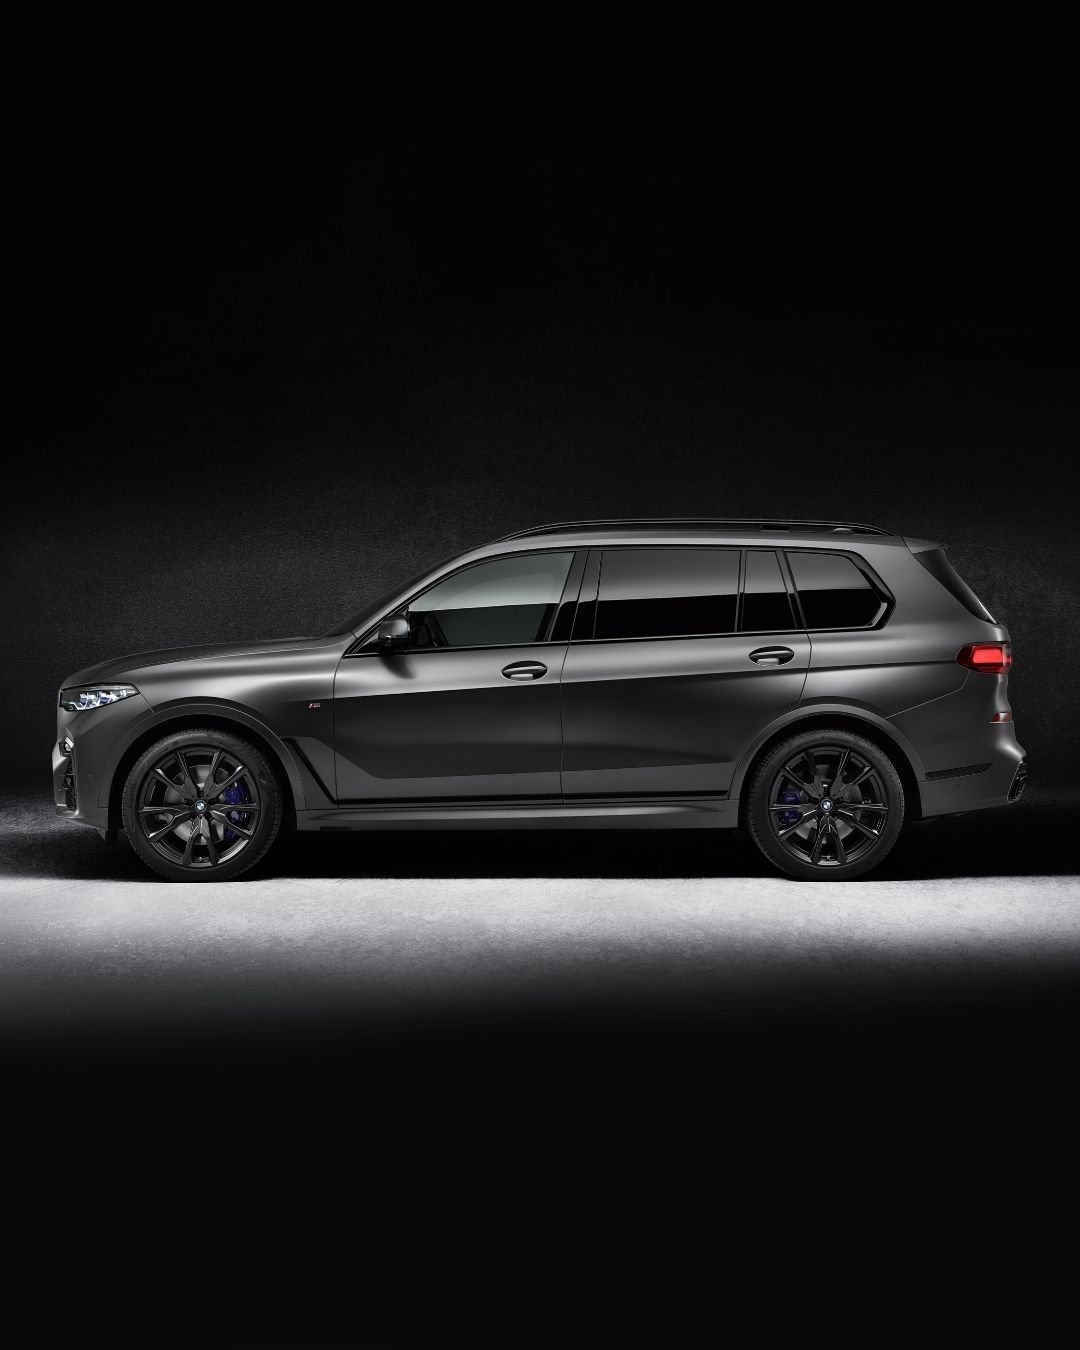 "BMW M GmbH on Instagram: ""Bright power from the deepest darkness. The BMW X7 Edition Dark Shadow. #TheX7 #BMW #X7M50i #BMWM BMW X7 M50i: Fuel consumption in l/100 km…"""